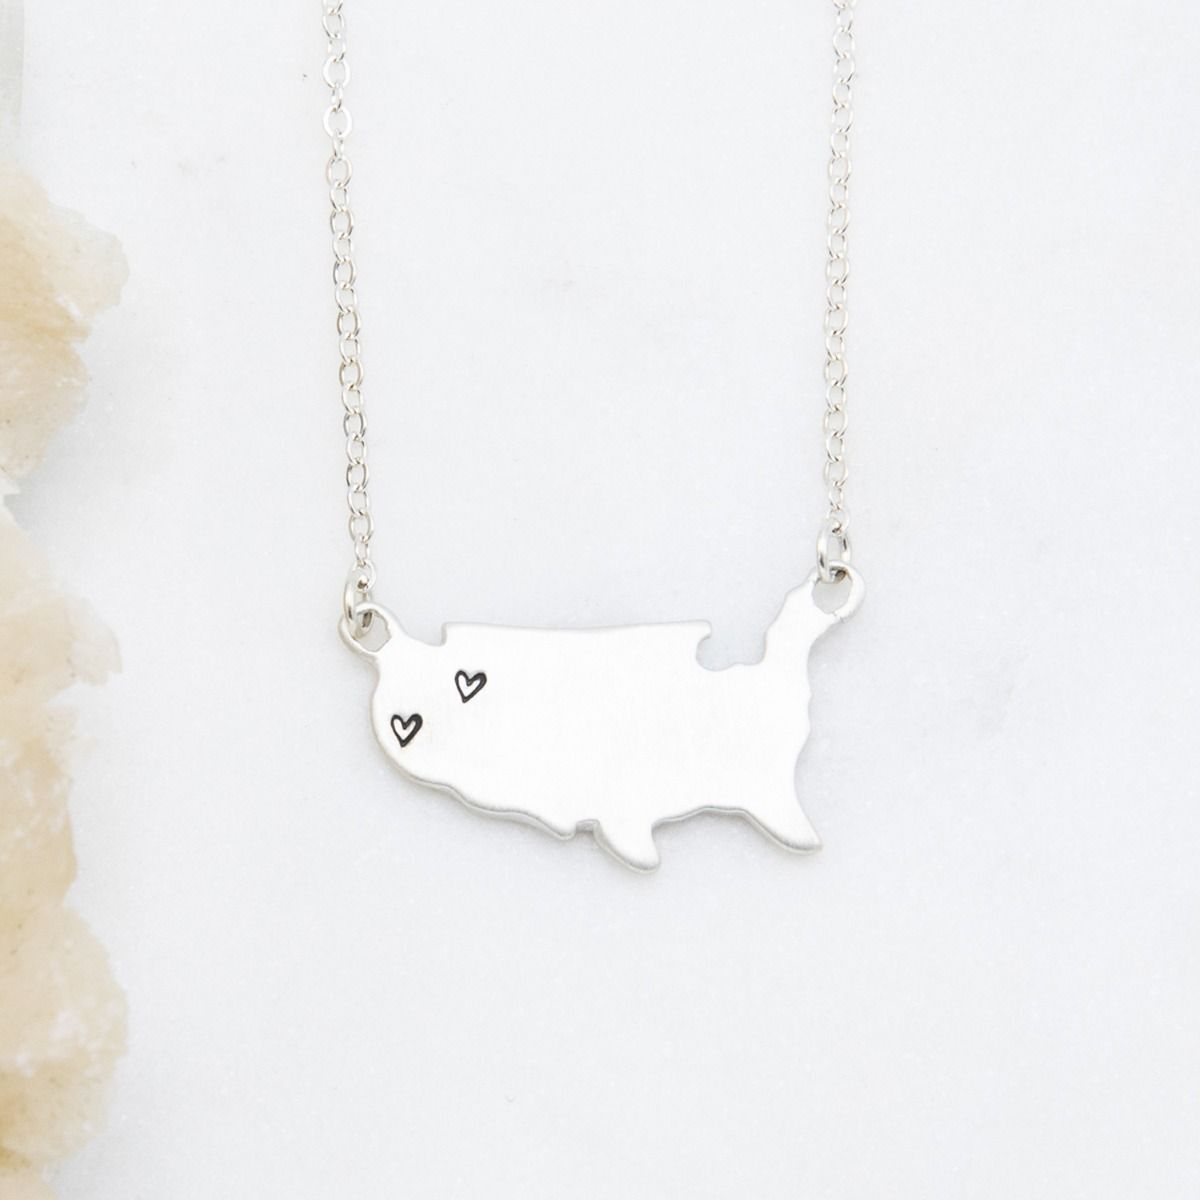 State of My Heart Necklace  - $69.00